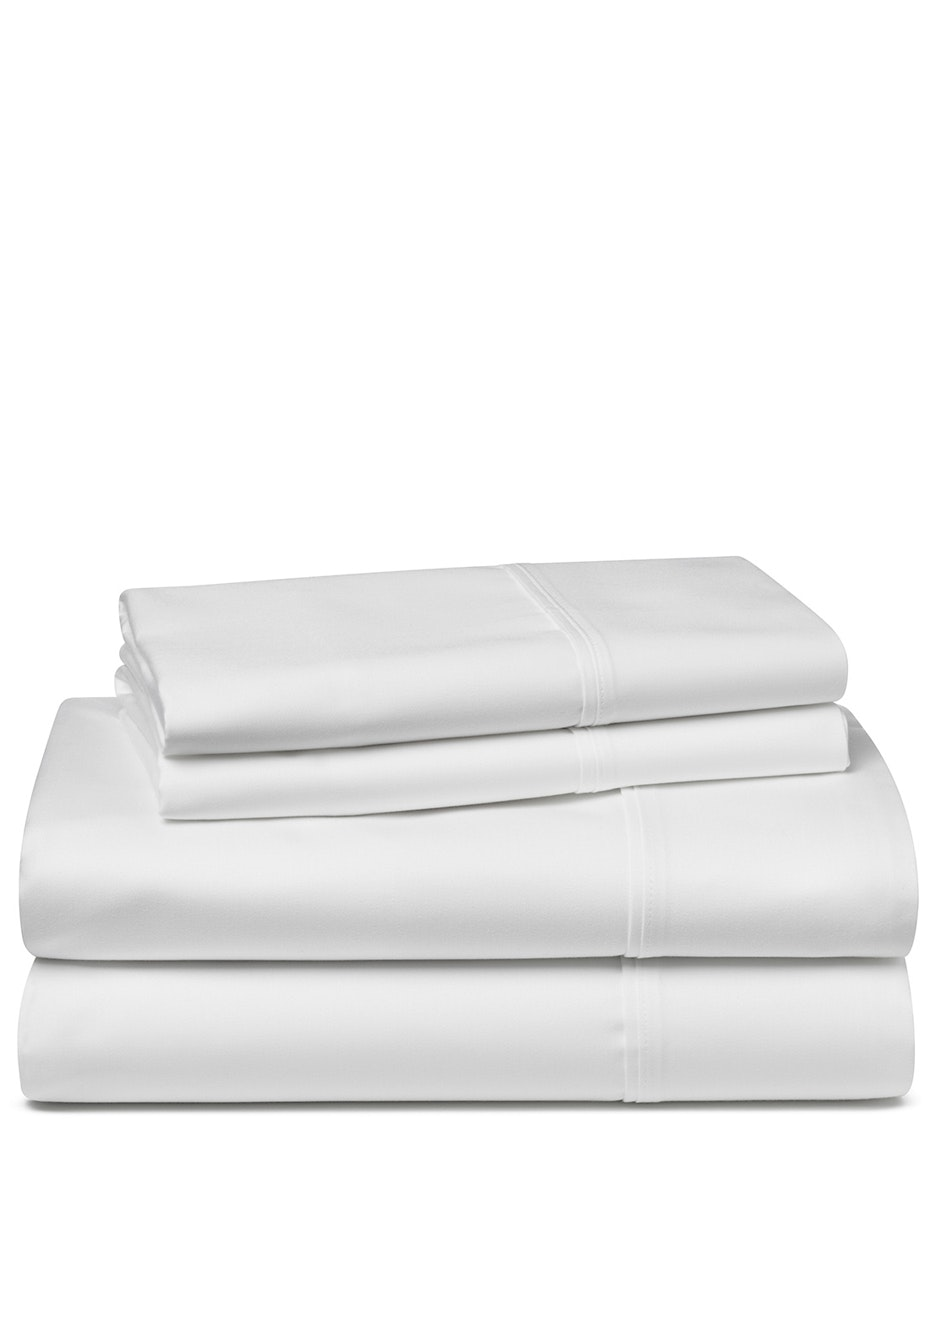 Palazzo Royale 1500TC Premium Blend Sheet Set Queen Bed Snow White